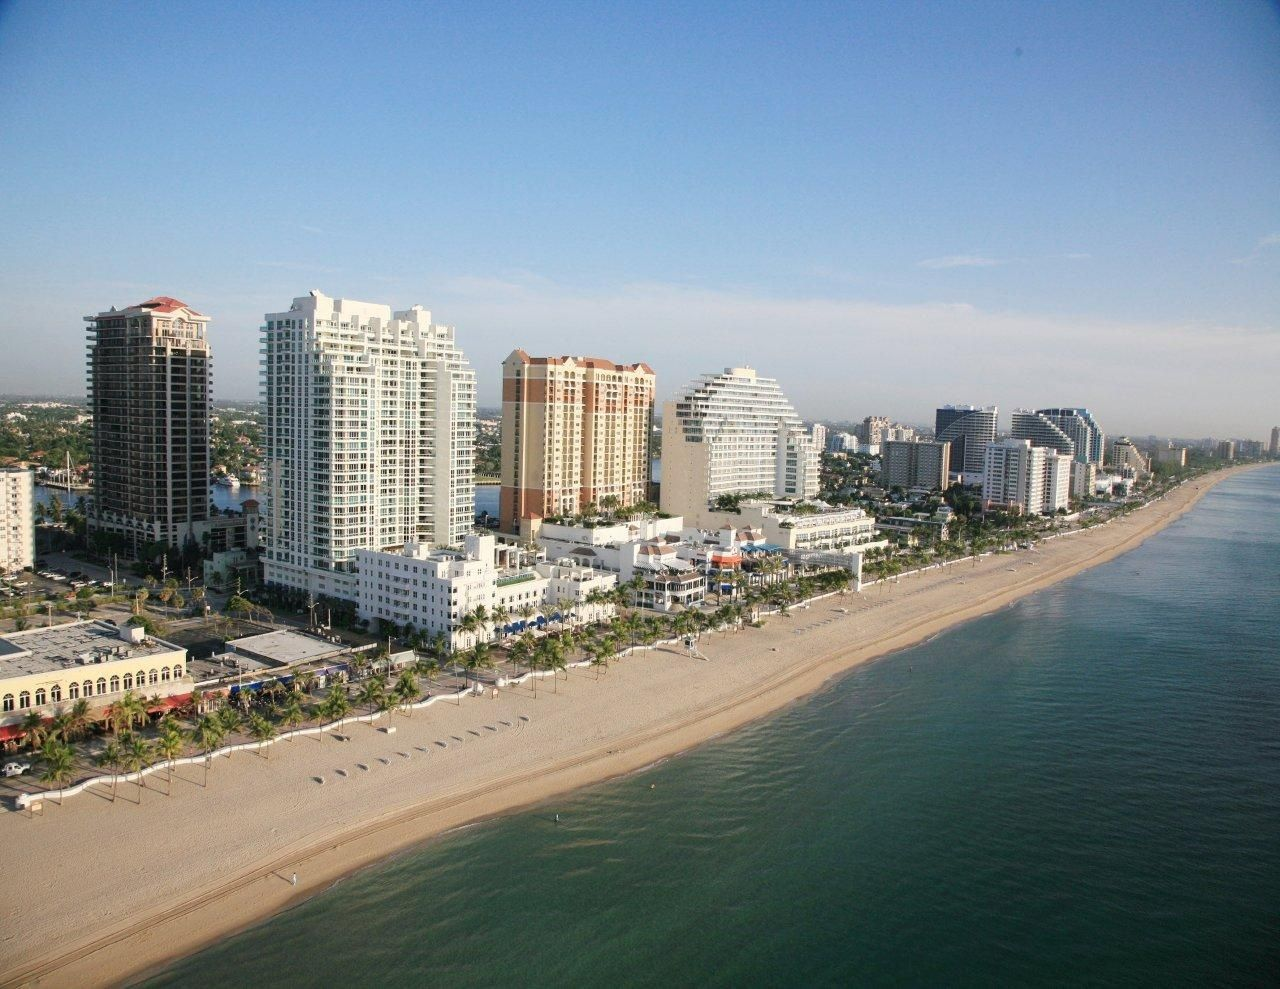 Fort Lauderdale Beach Real Estate - Fort Lauderdale, FL Condos for Sale